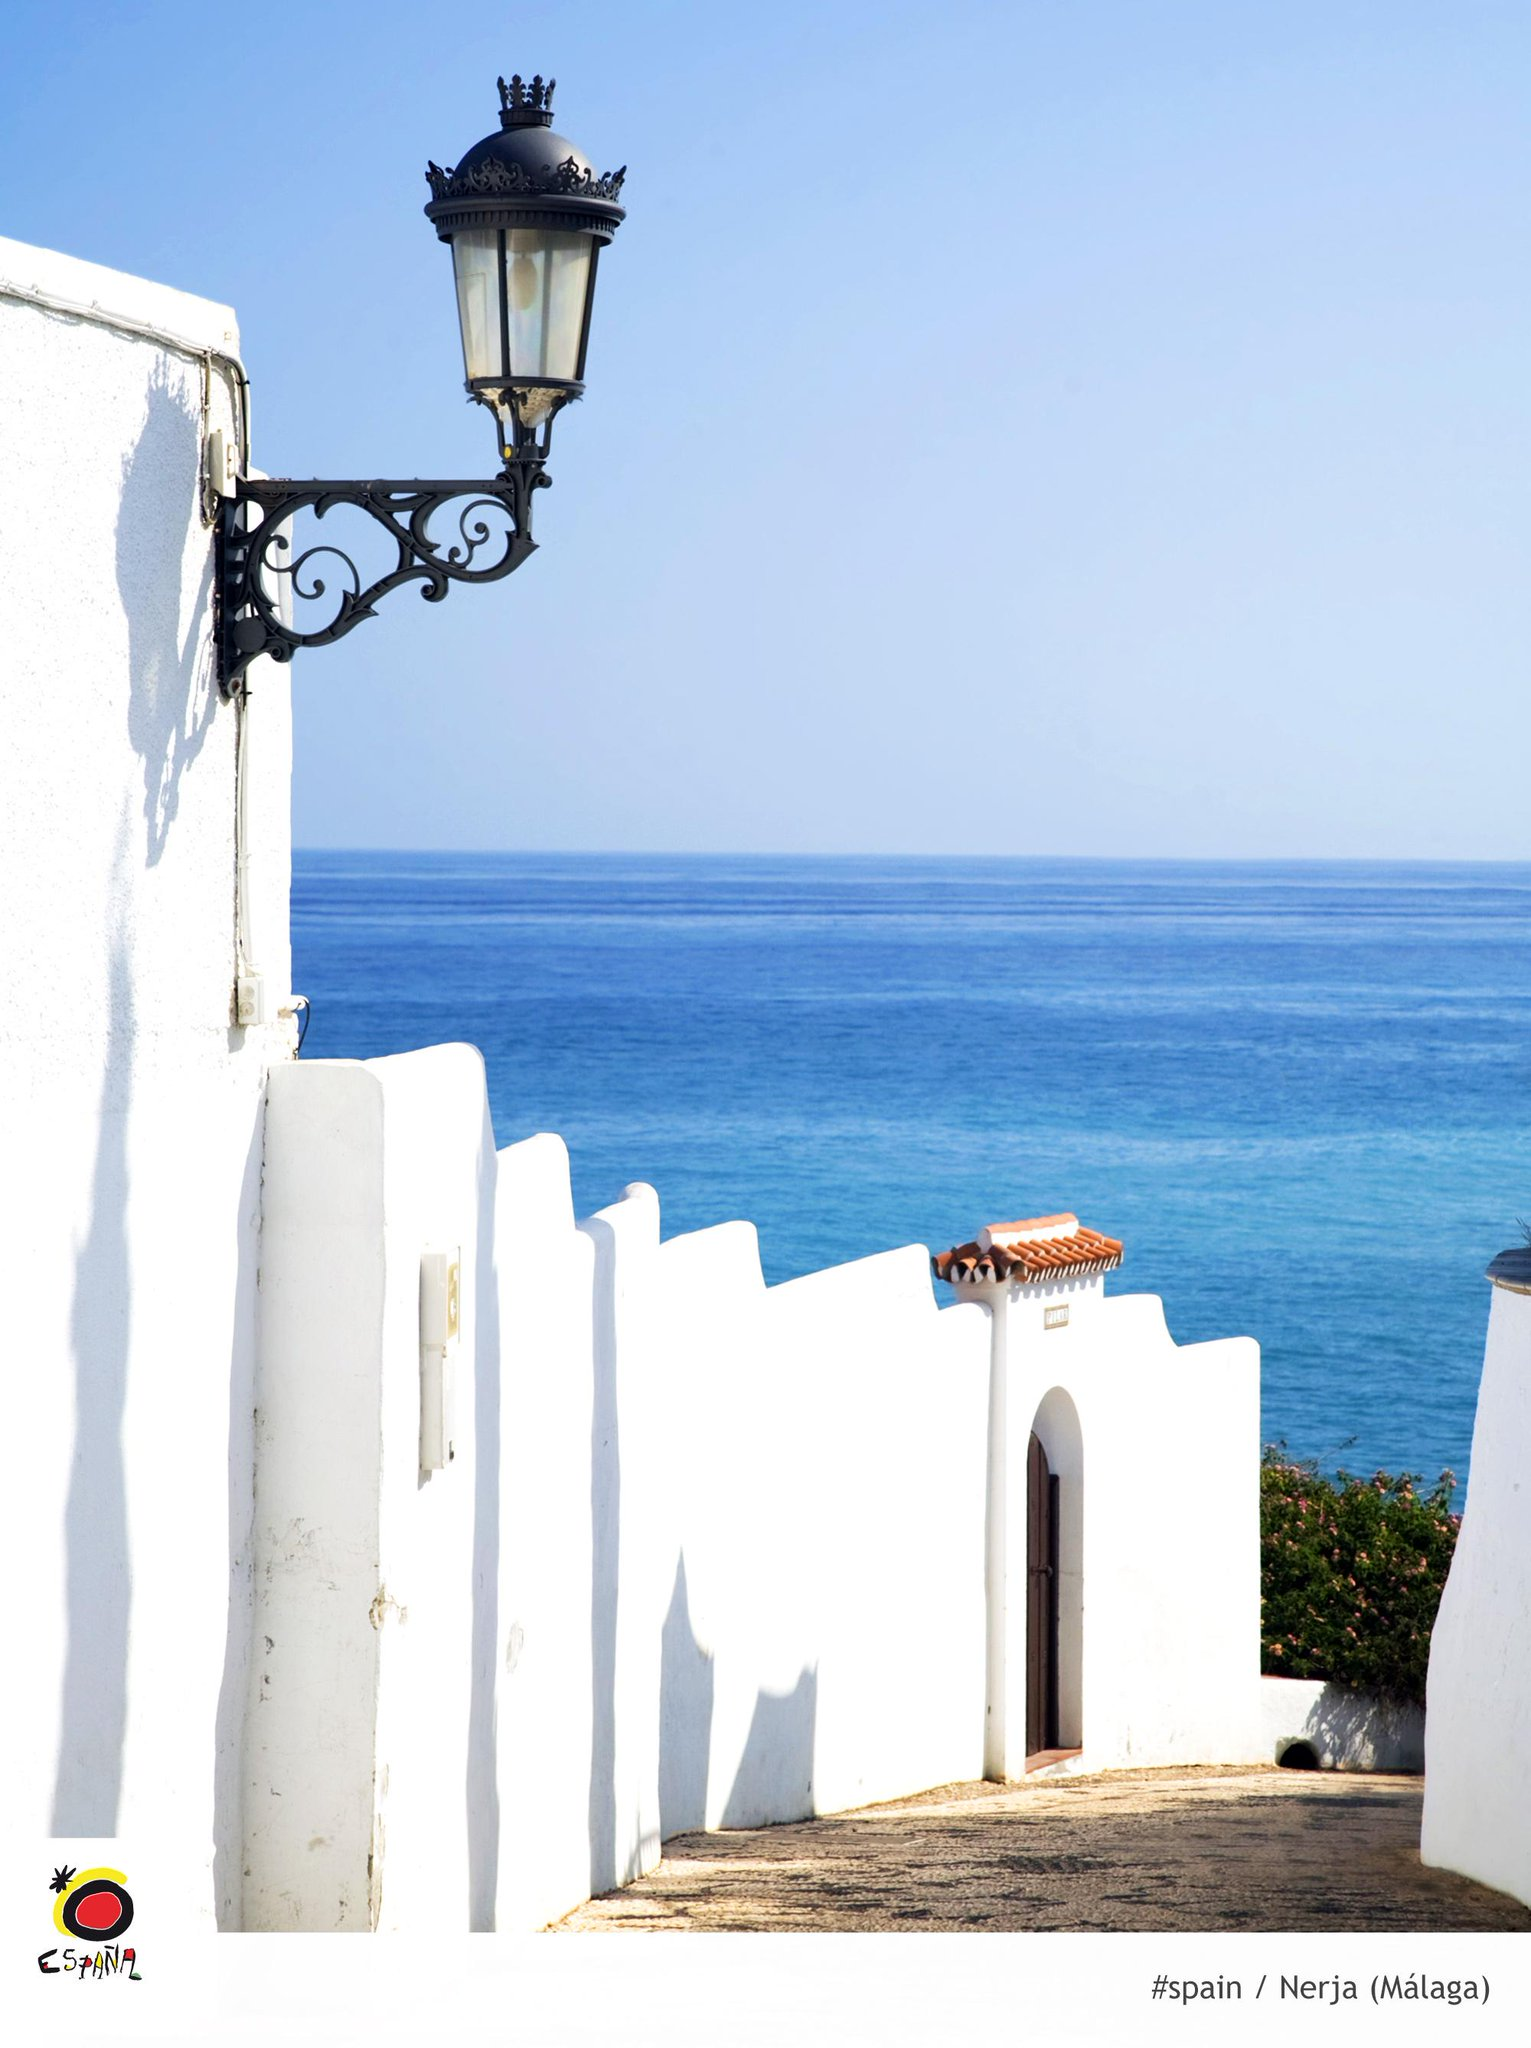 #Nerja and the Mediterranean Sea have an envy-worthy relationship @viveandalucia #spain http://t.co/qdIDiI40cK